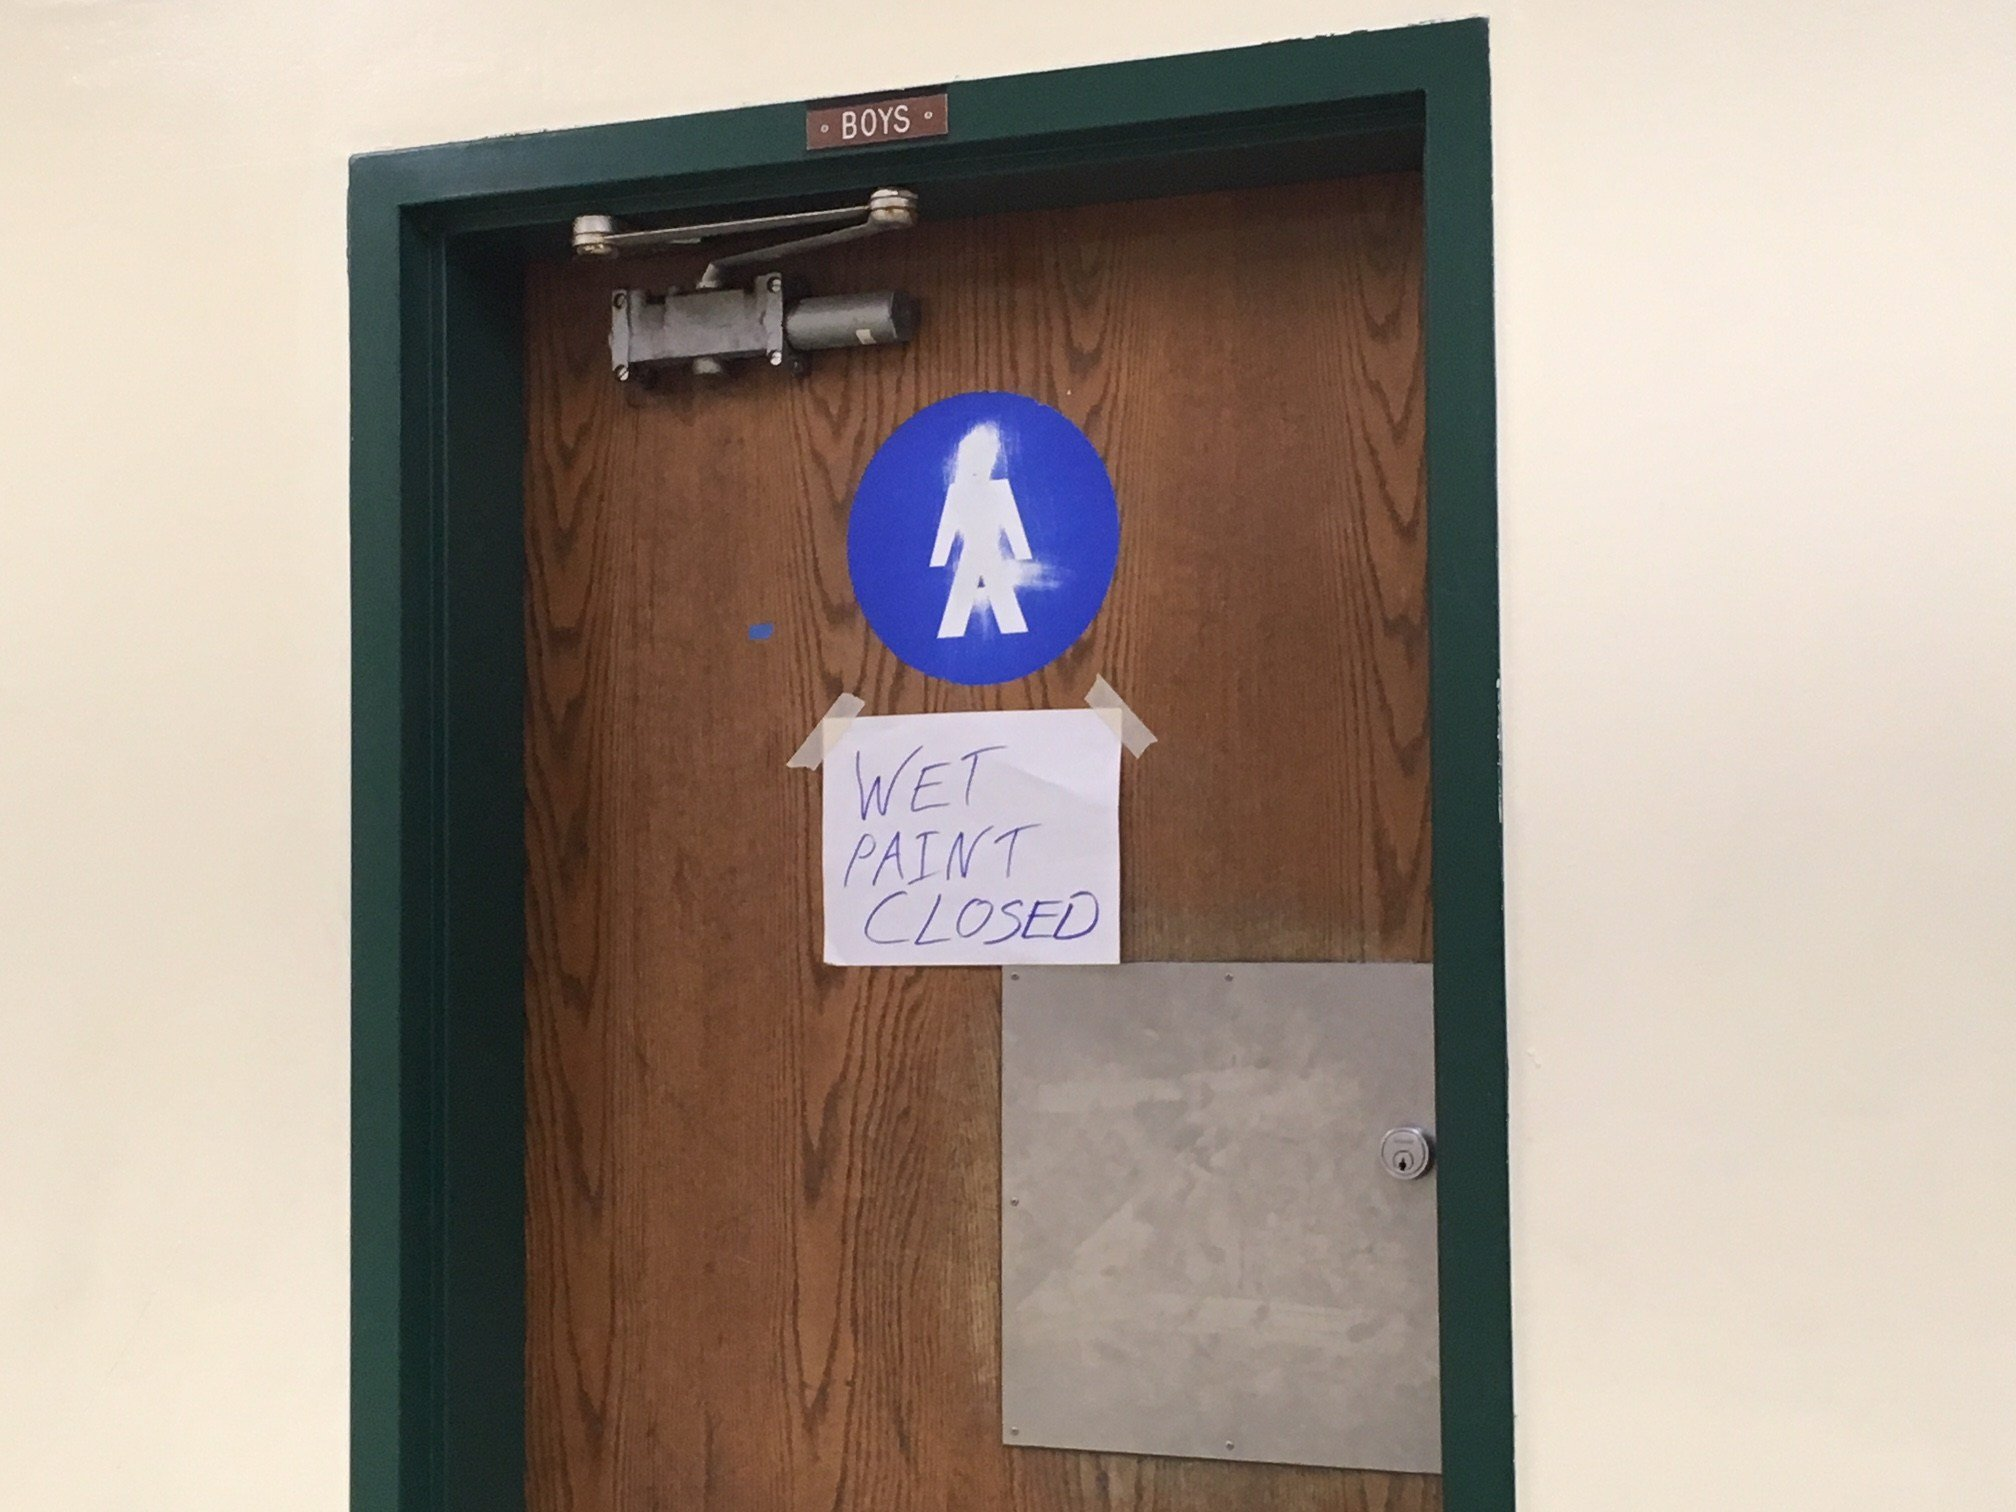 The bathroom at Cleveland HS where racist graffiti was discovered.